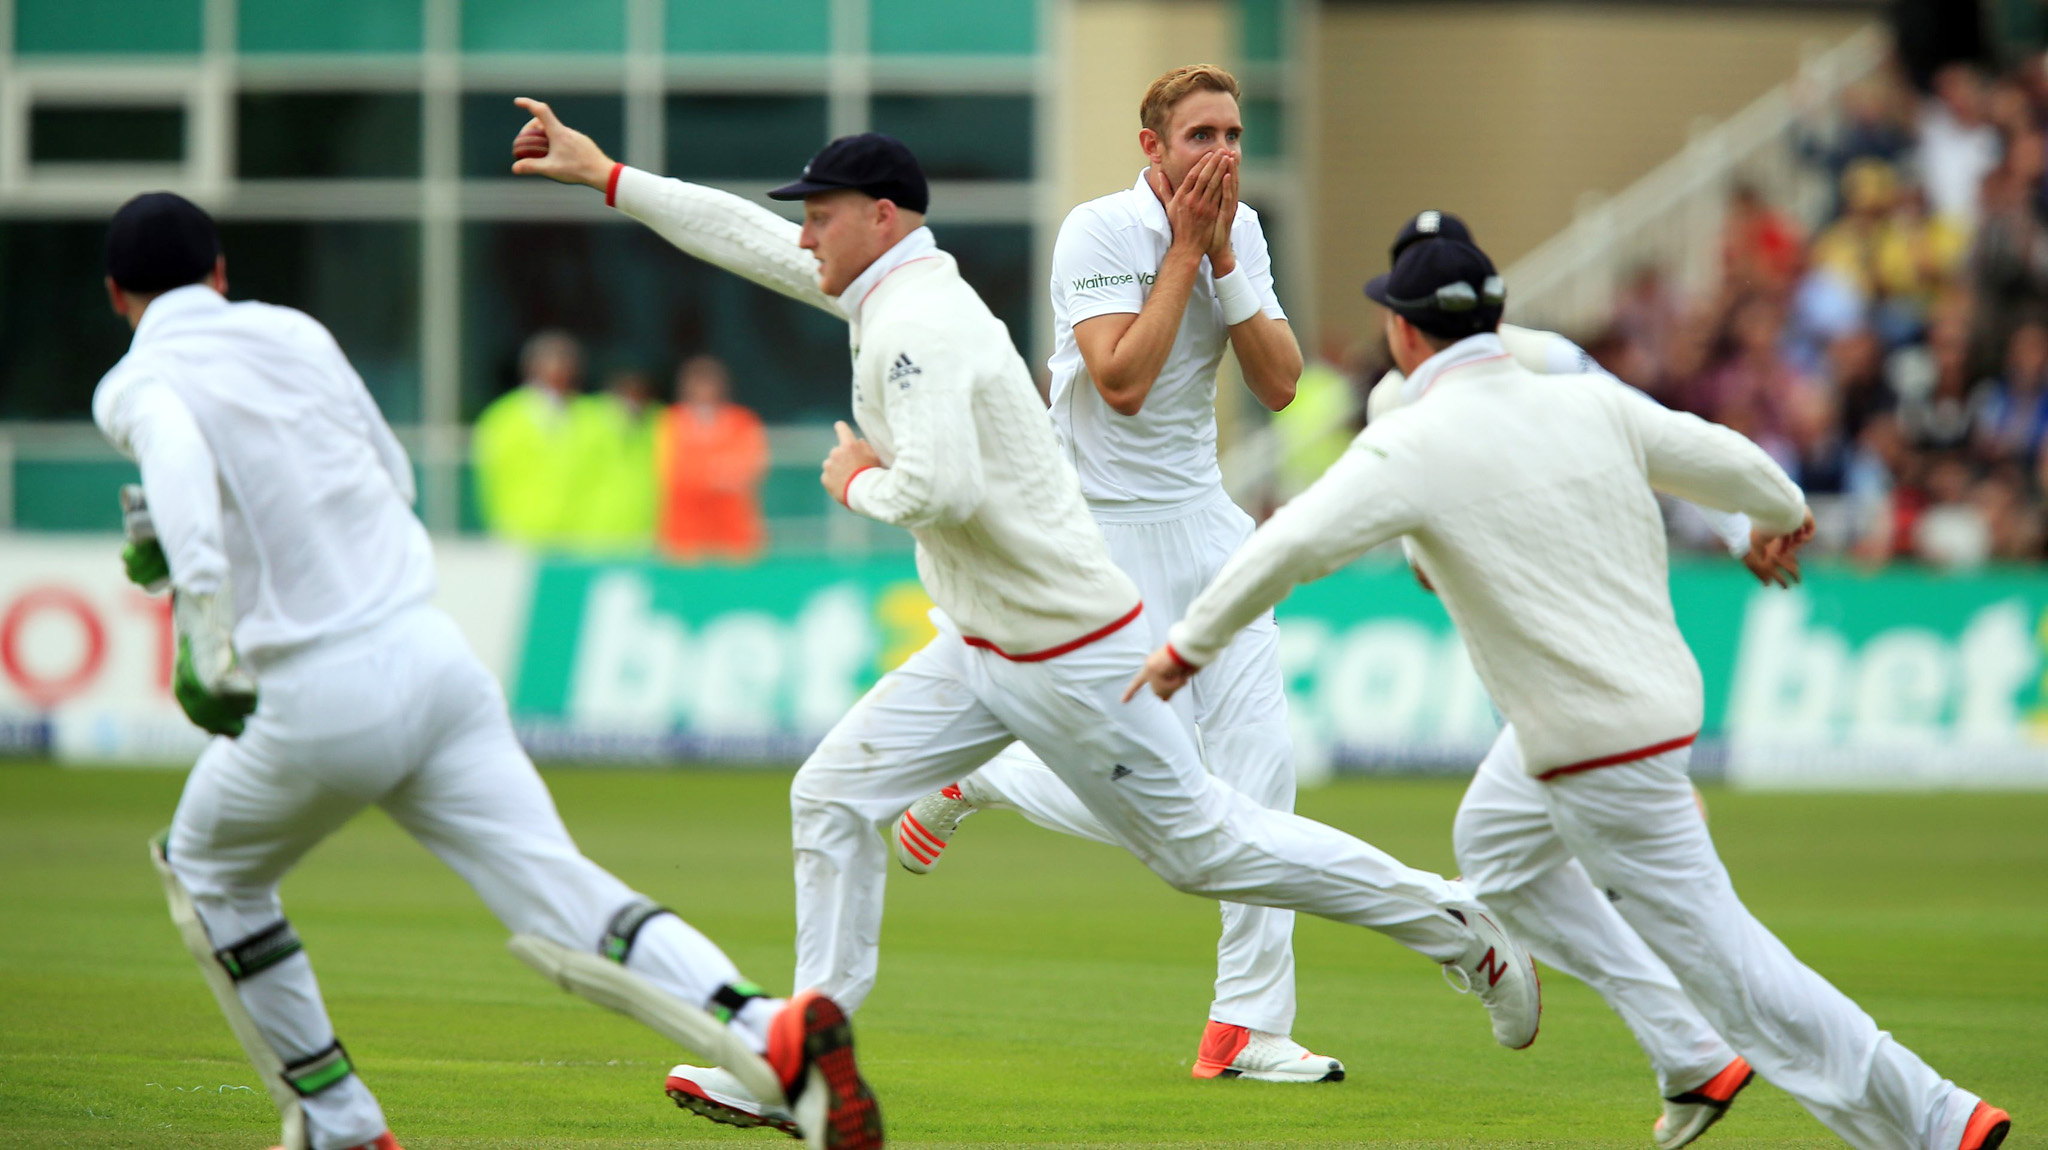 Cricket - Fourth Investec Ashes Test - England v Australia - Day One - Trent Bridge...England's Stuart Broad celebrates the wicket of Australia's Adam Voges  during day one of the Fourth Investec Ashes Test at Trent Bridge, Nottingham. PRESS ASSOCIATION Photo. Picture date: Thursday August 6, 2015. See PA story CRICKET England. Photo credit should read: Mike Egerton/PA Wire. Editorial use only. No commercial use without prior written consent of the ECB. Still image use only no moving images to emulate broadcast. No removing or obscuring of sponsor logos. Call +44 (0)1158 447447 for further information